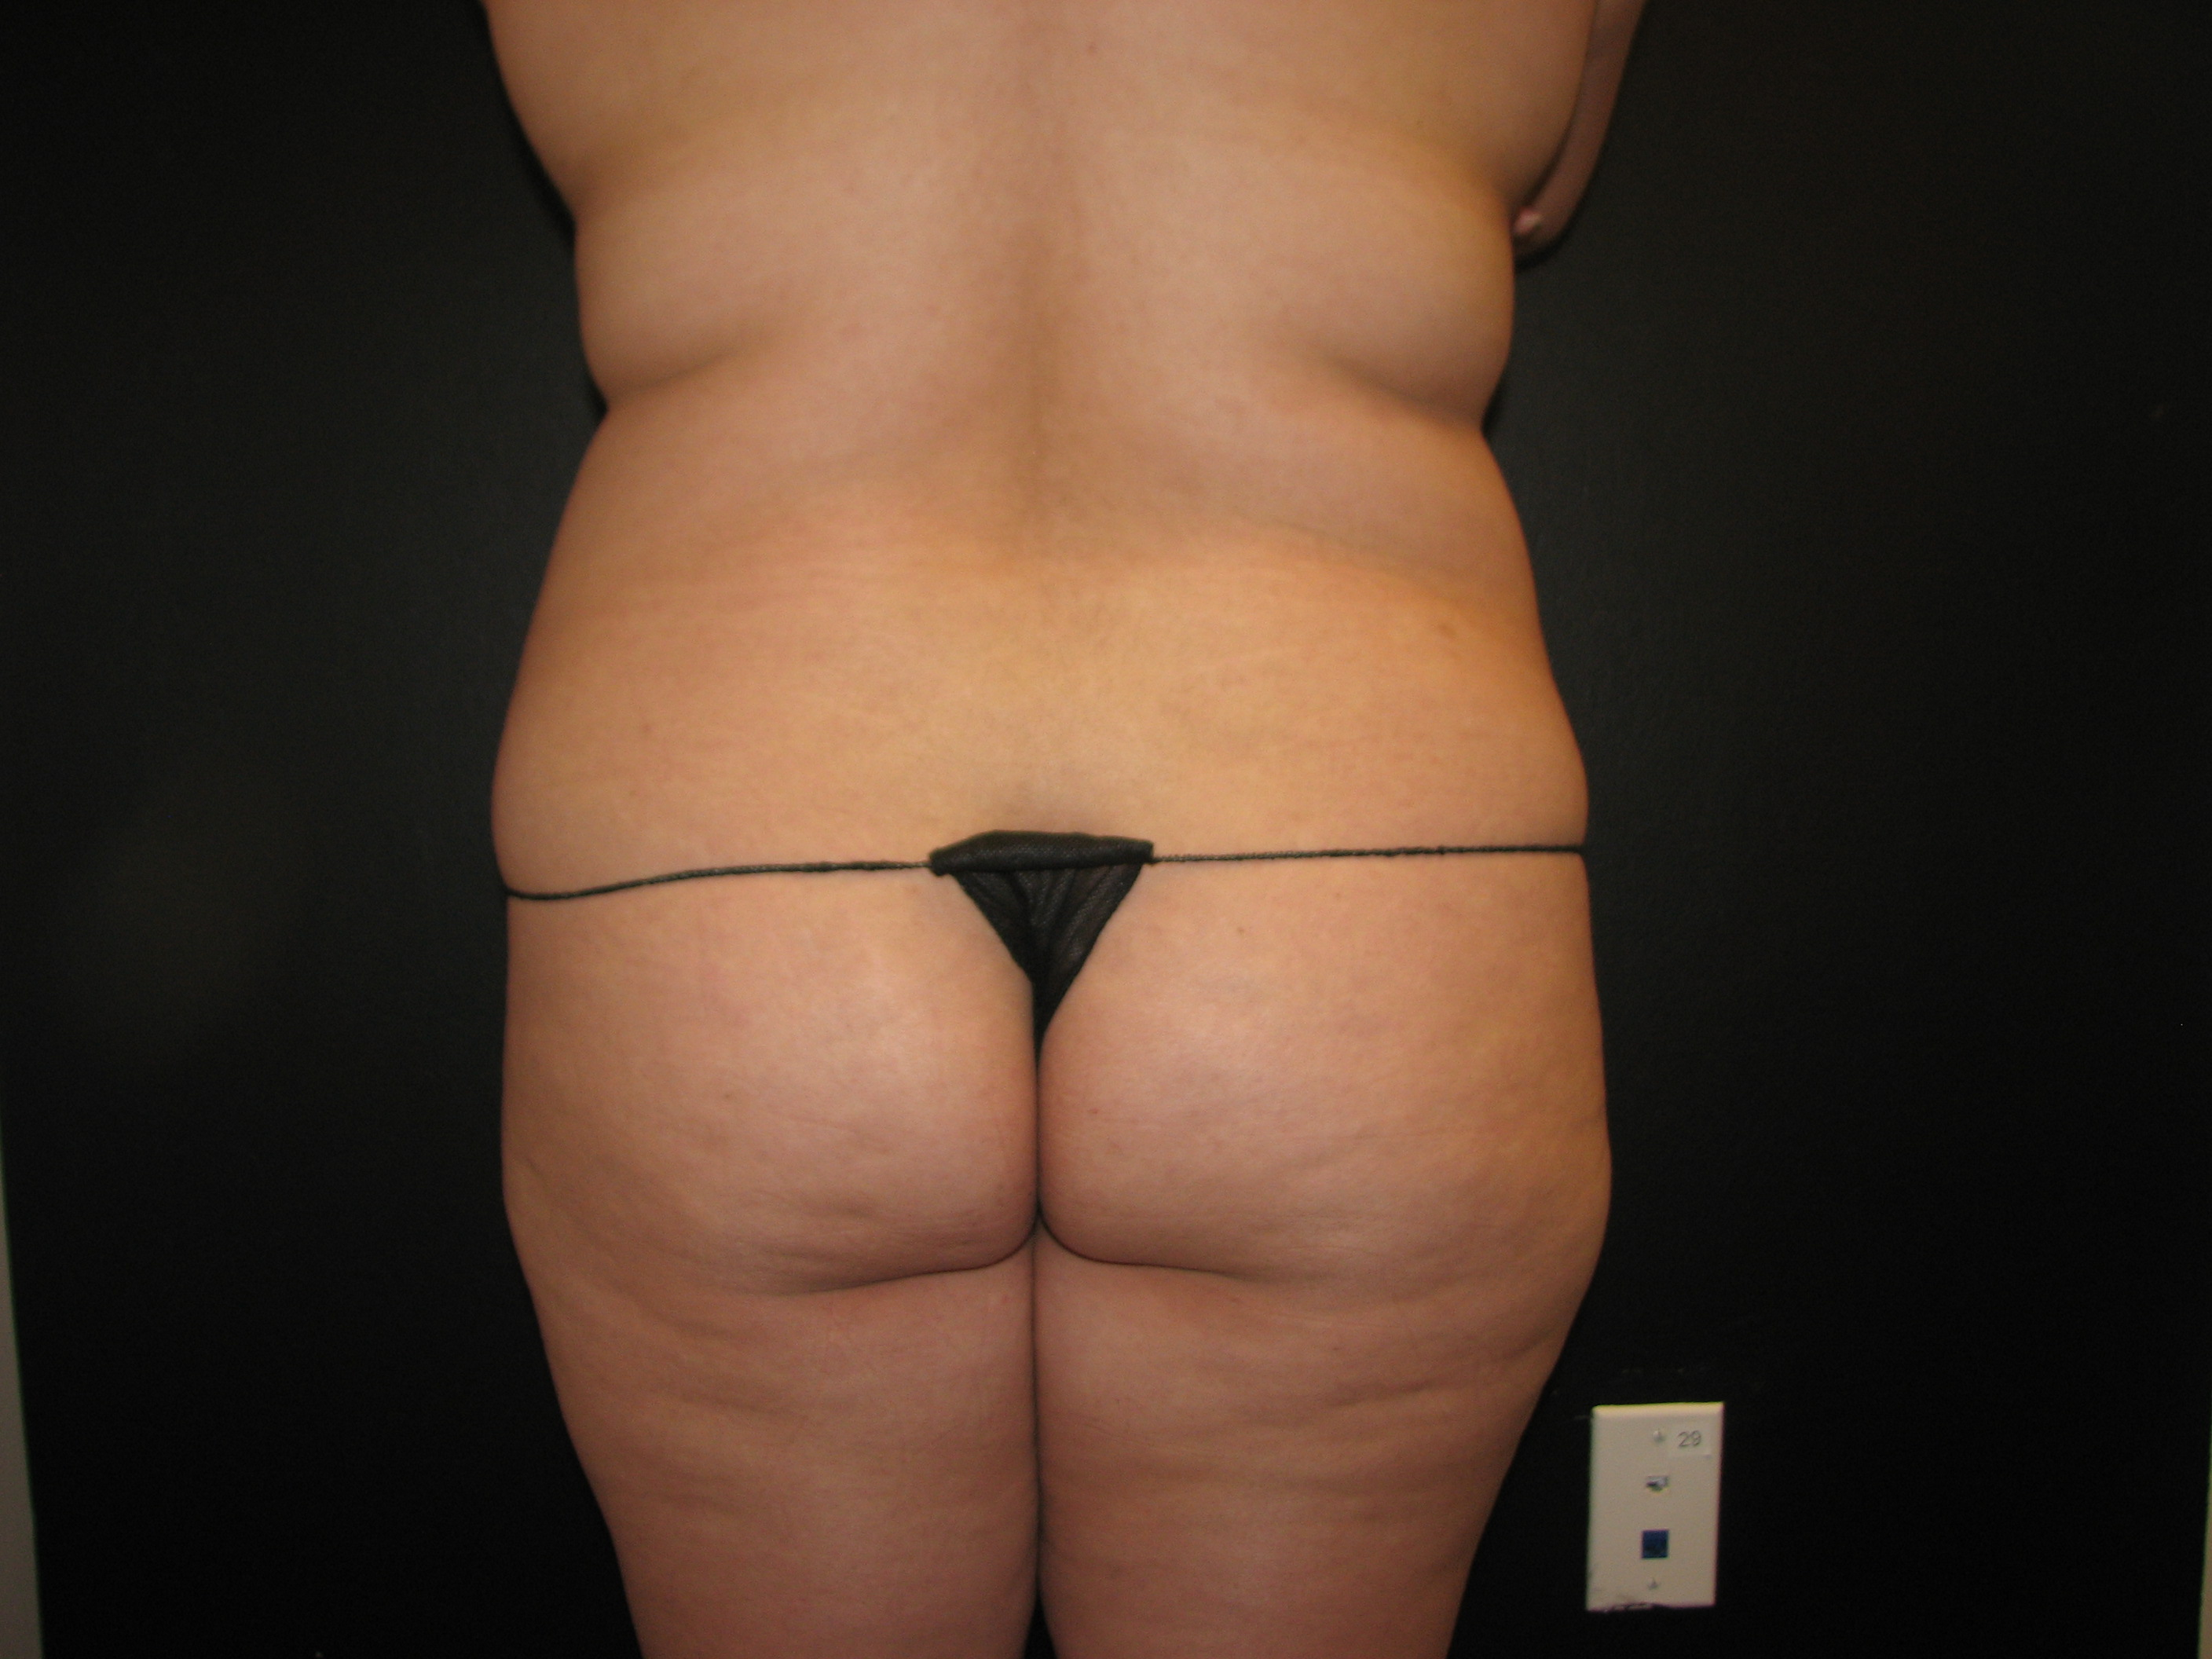 Brazilian Butt Lift Before - Brazilian Butt Lift - Waist / Hips / Buttocks